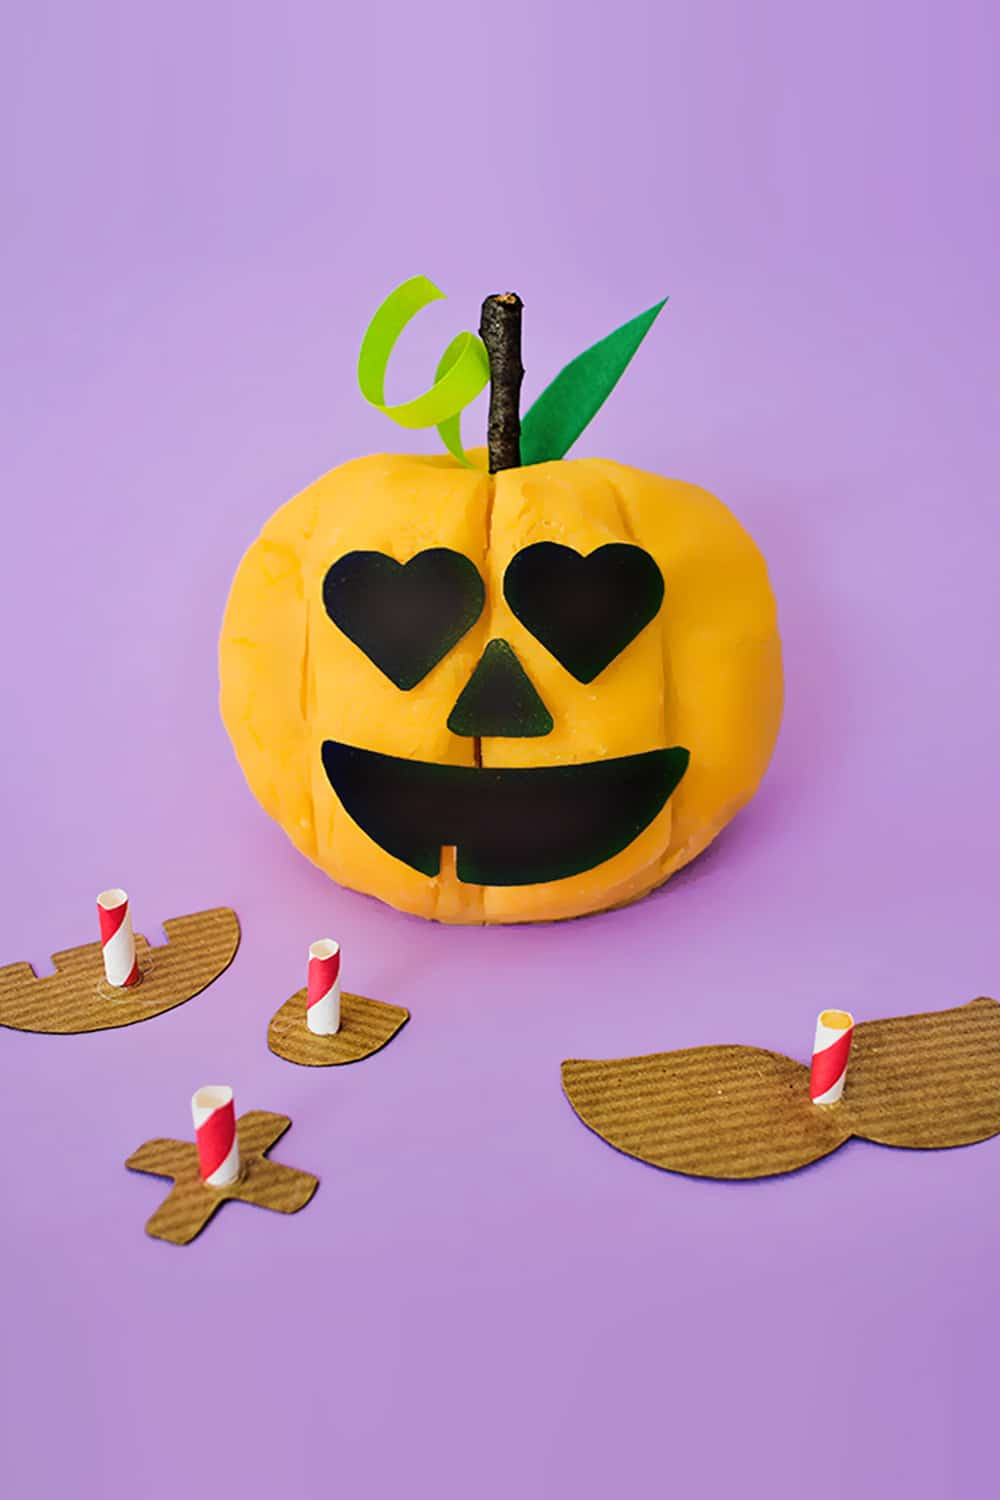 Celebrate Halloween with this fun and easy build-your-own Jack-O-Lantern play dough activity for kids!